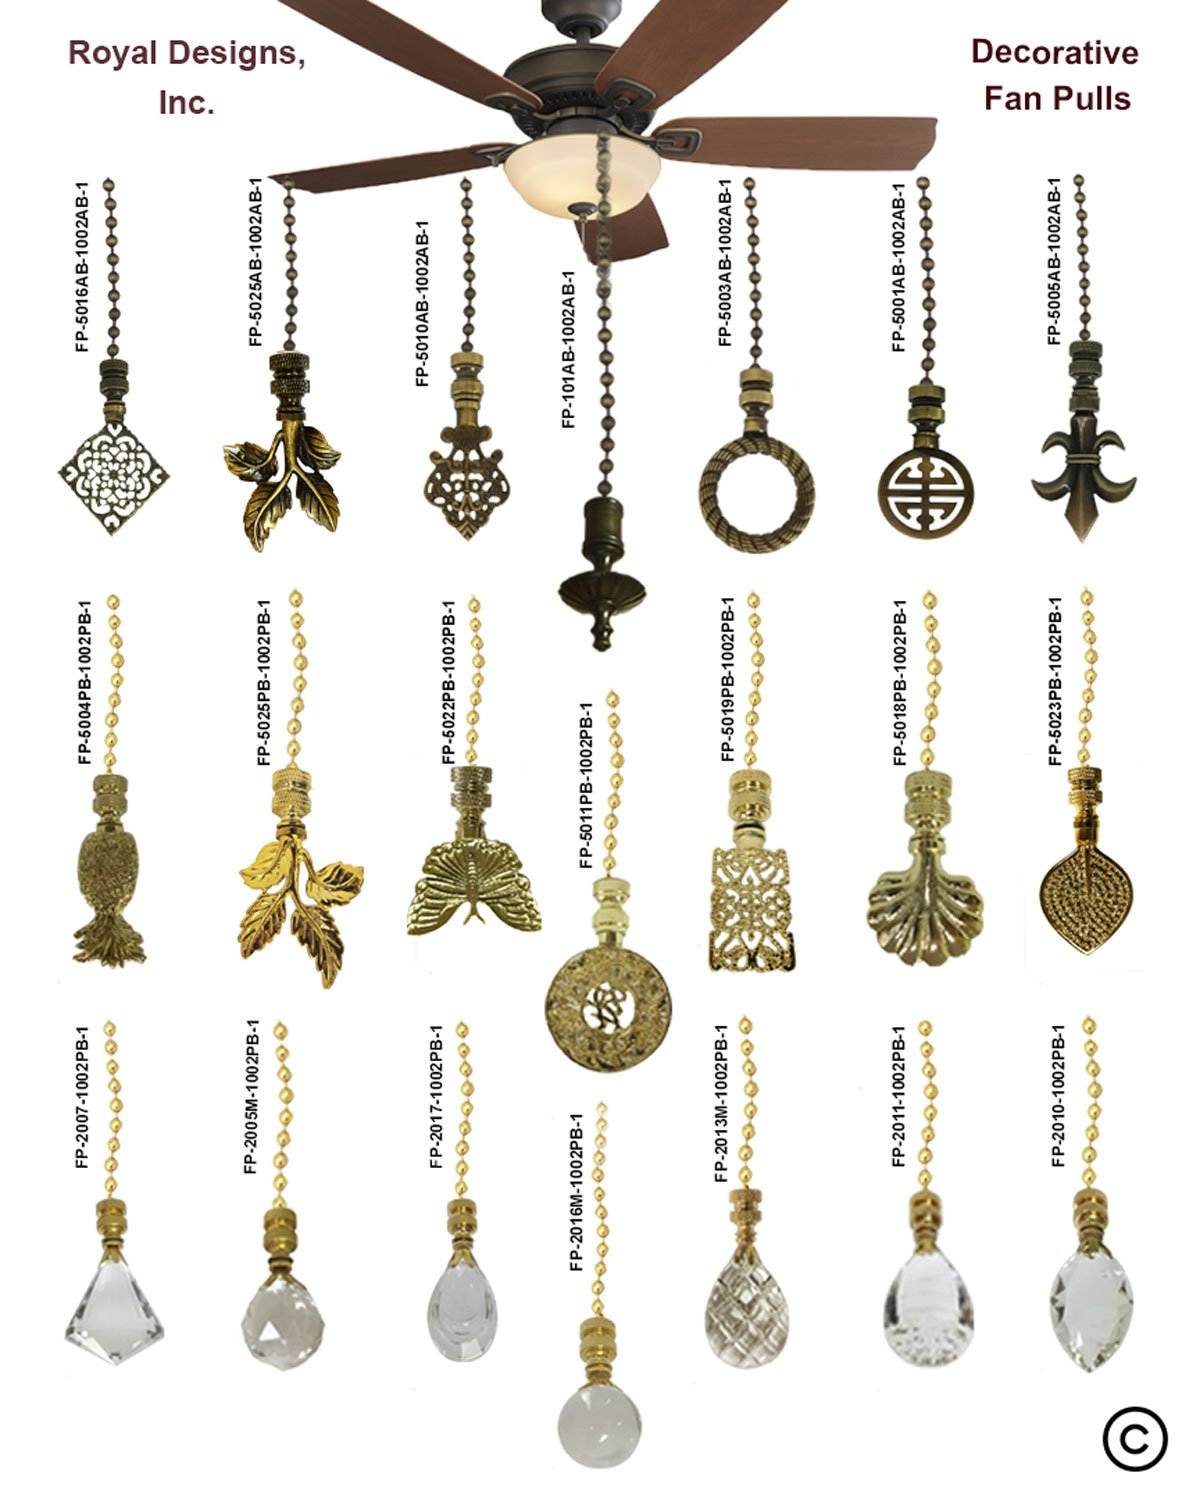 Royal Designs Fan Pull Chain with Pear Shaped Crystal Finial – Polished Brass – Set of 2 by Royal Designs, Inc (Image #4)